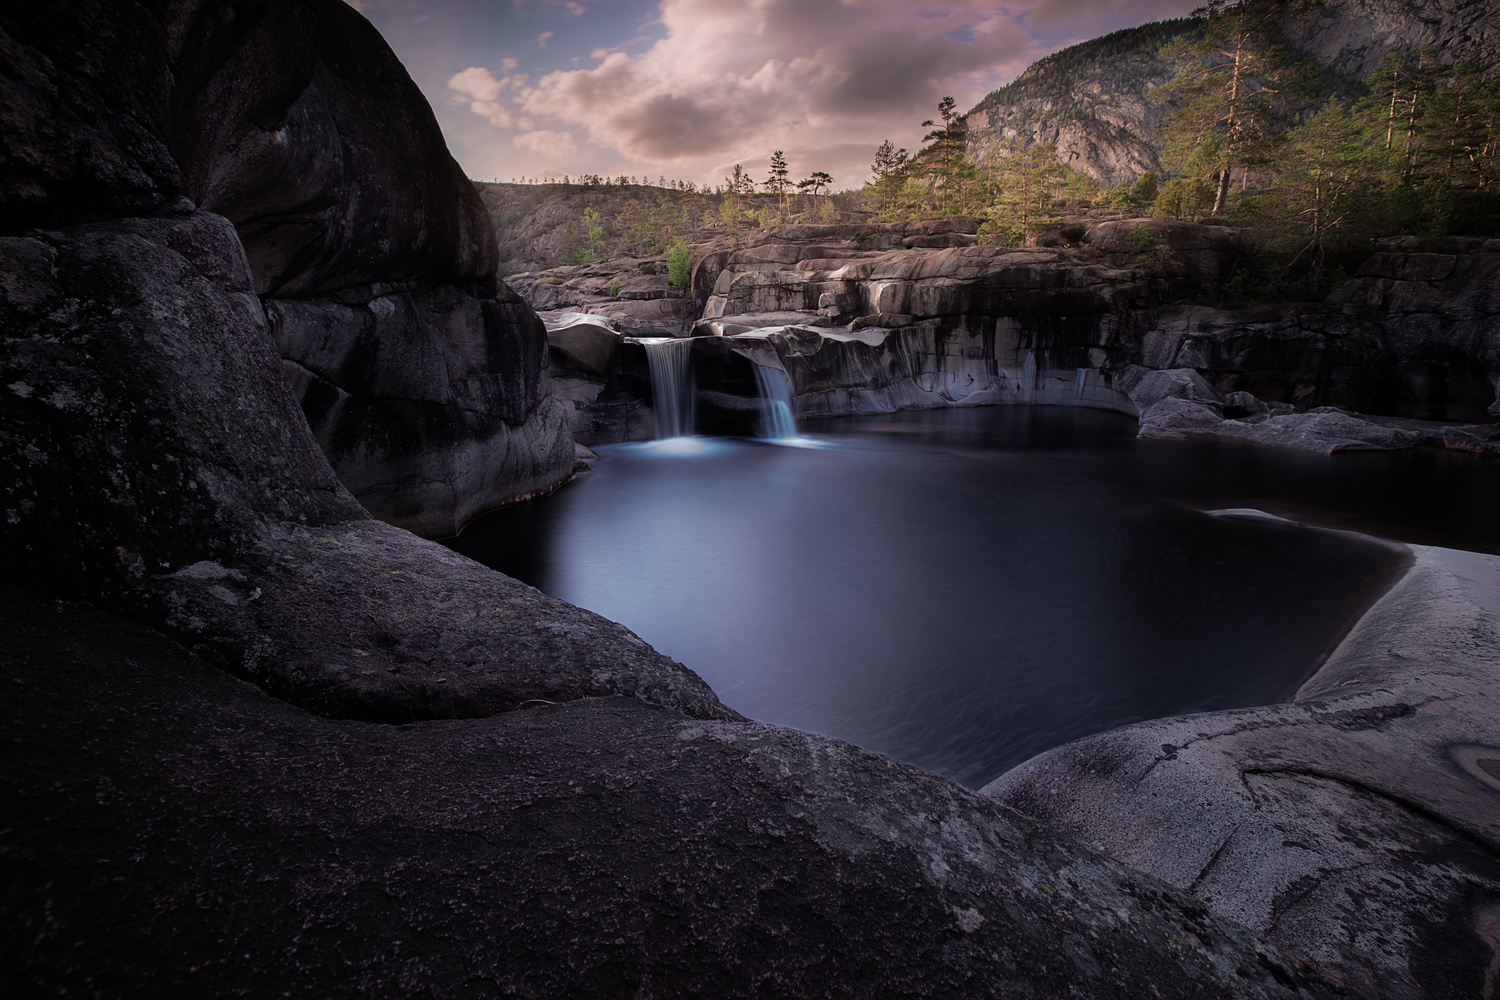 The potholes in Telemark, Norway by Roger Kristiansen